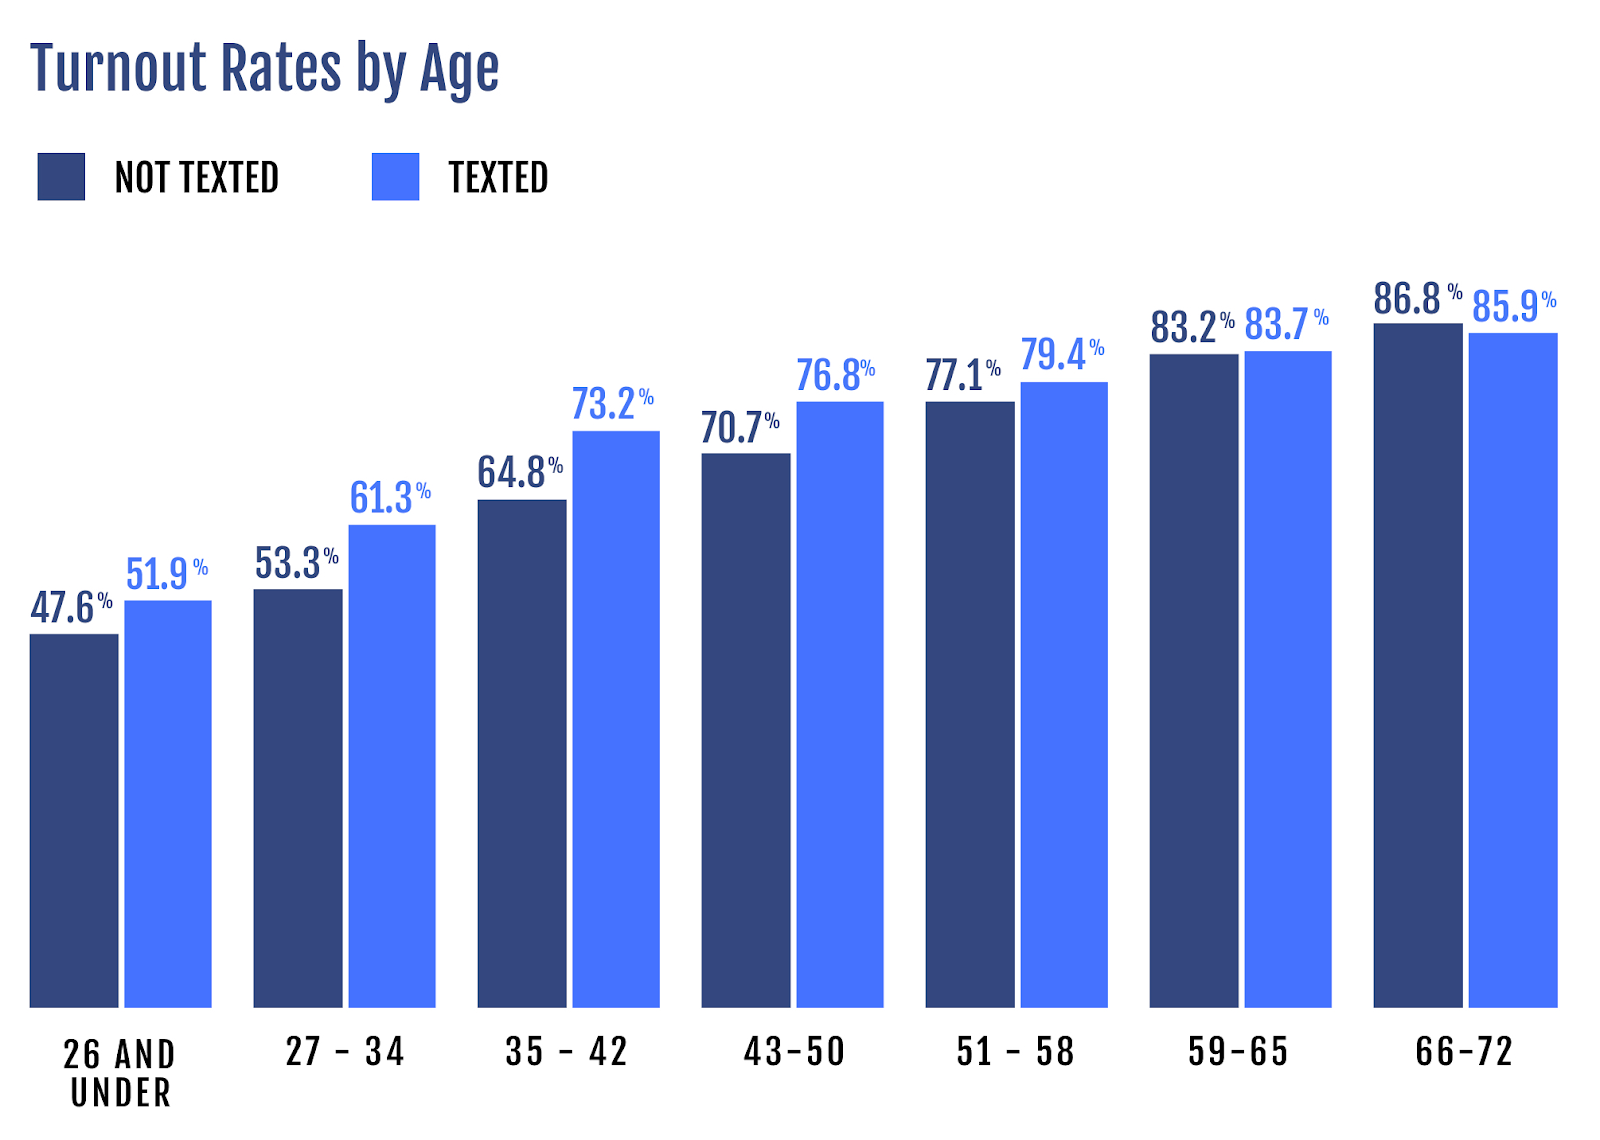 Voter Turn Out Rate By Age With Texting